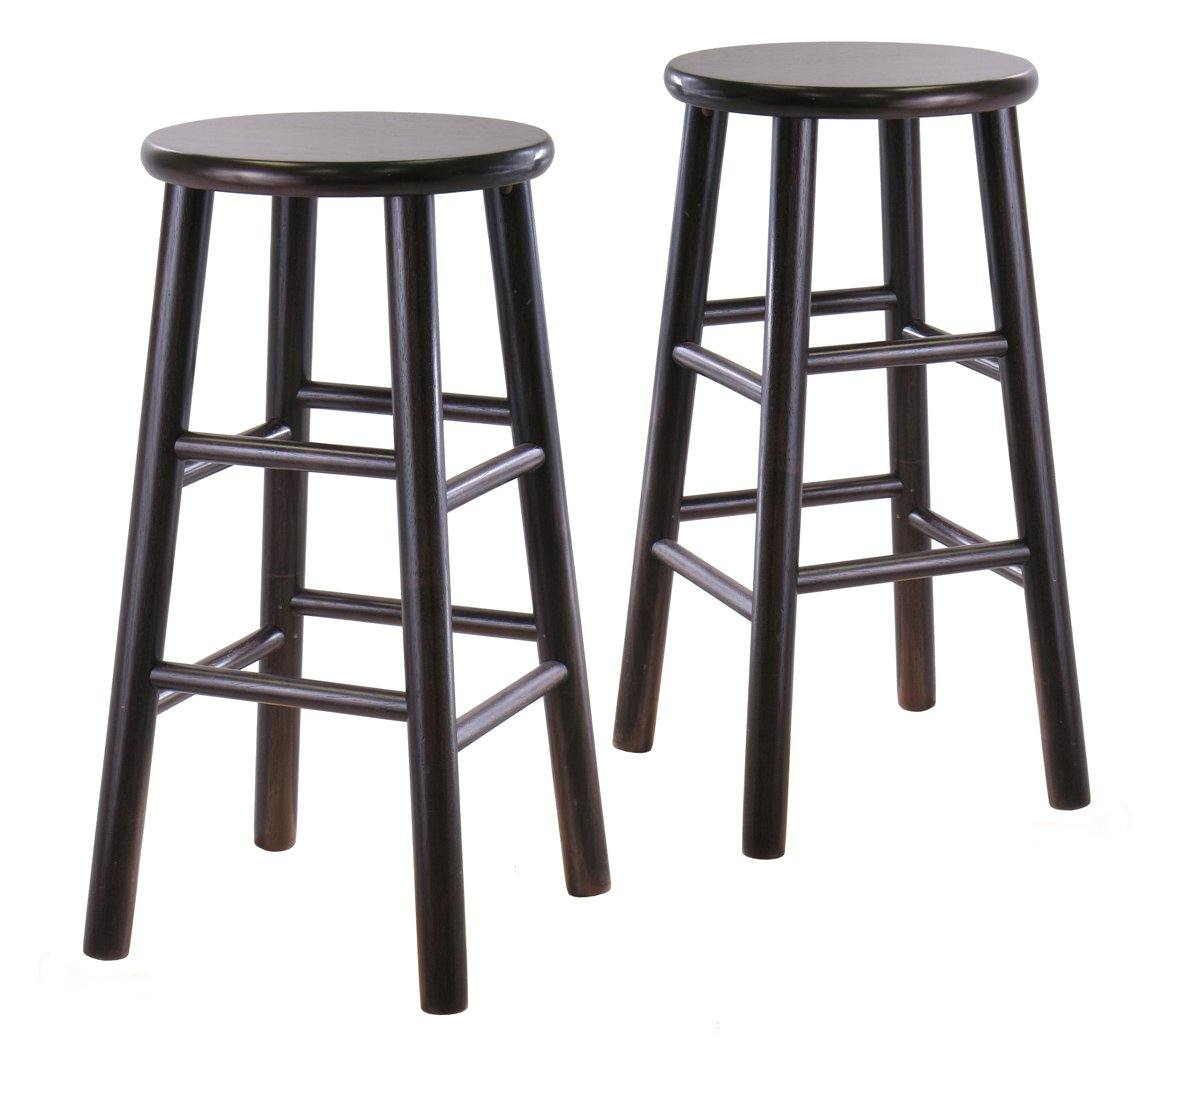 Tabby Counter Stools, 2-Pc Set, Espresso - My USA Furniture